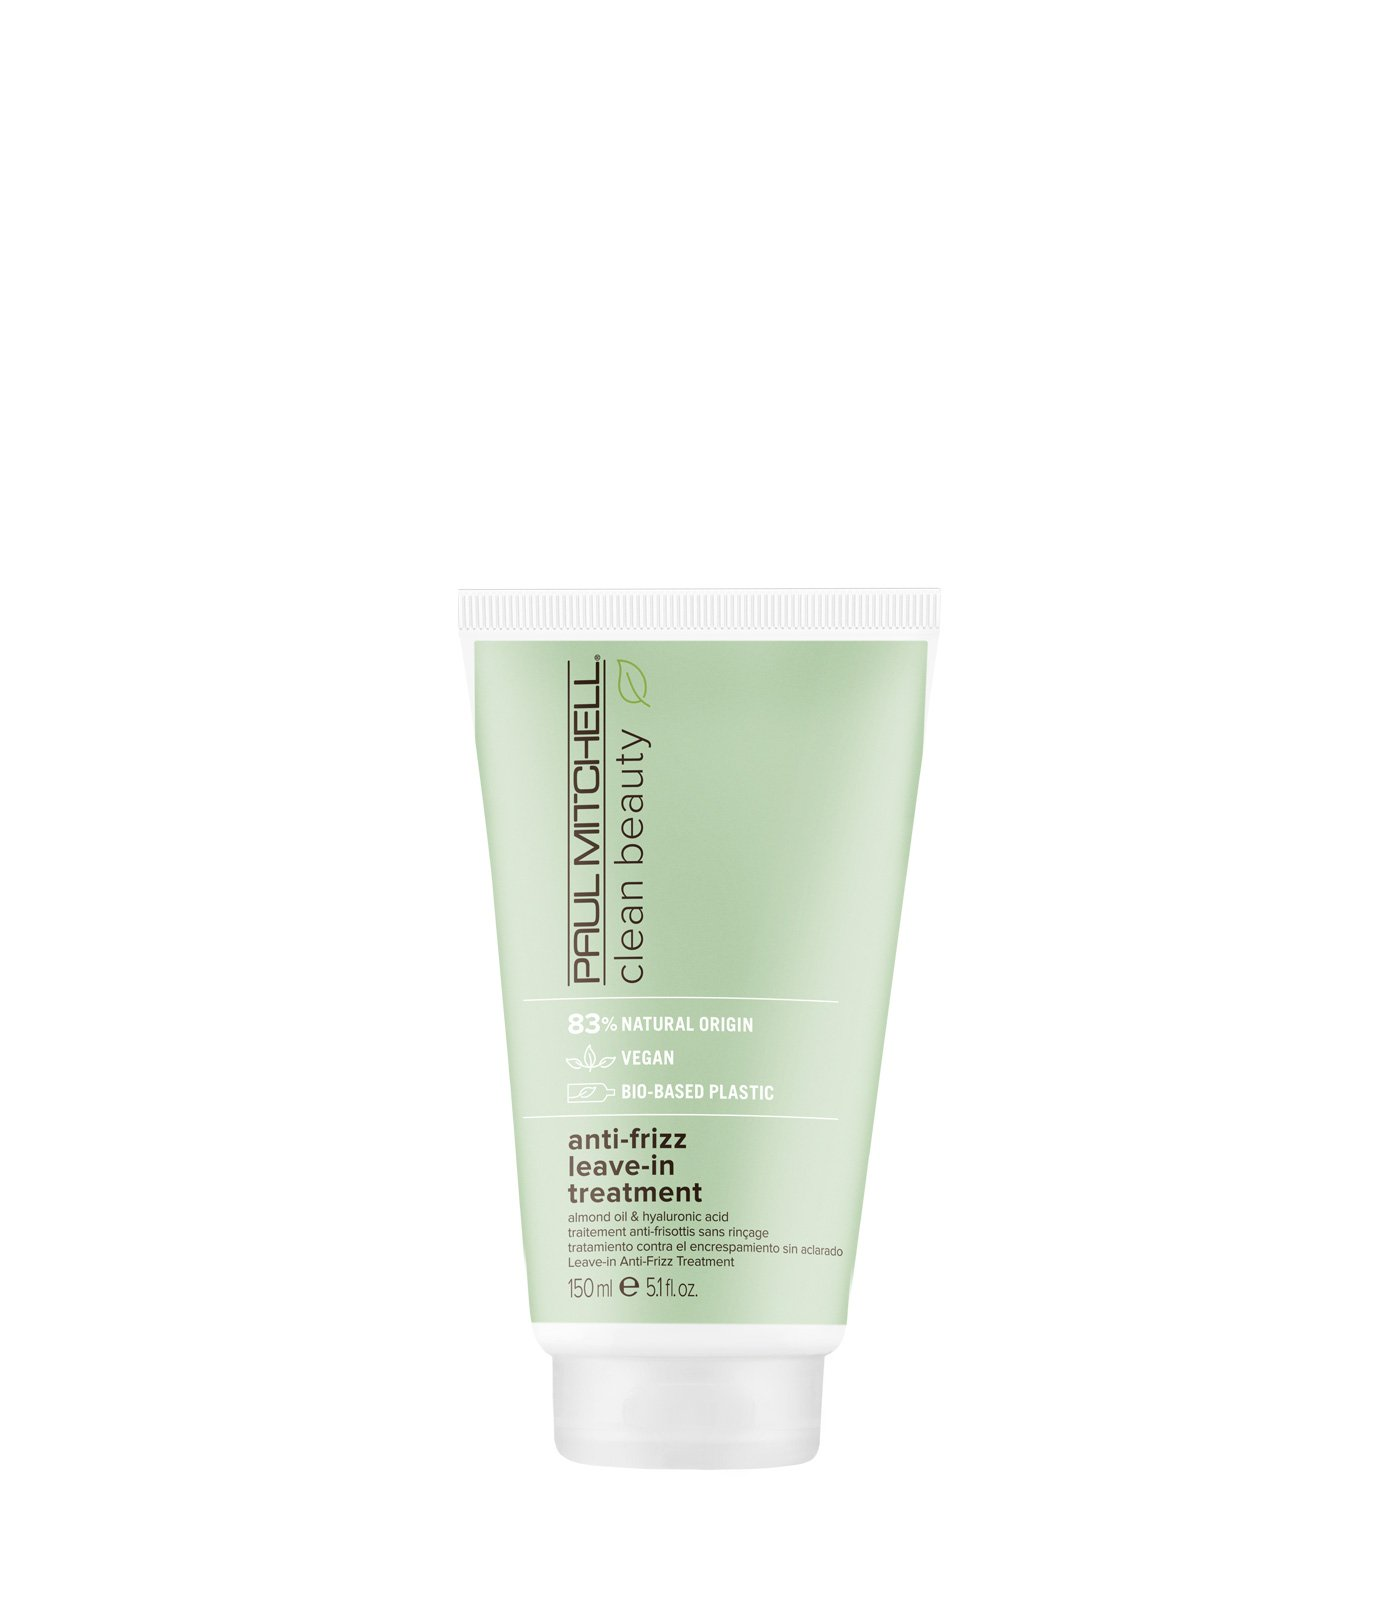 PAUL MITCHELL CLEAN BEAUTY Hydrate Anti-Frizz Leave-In Treatment 150 ml